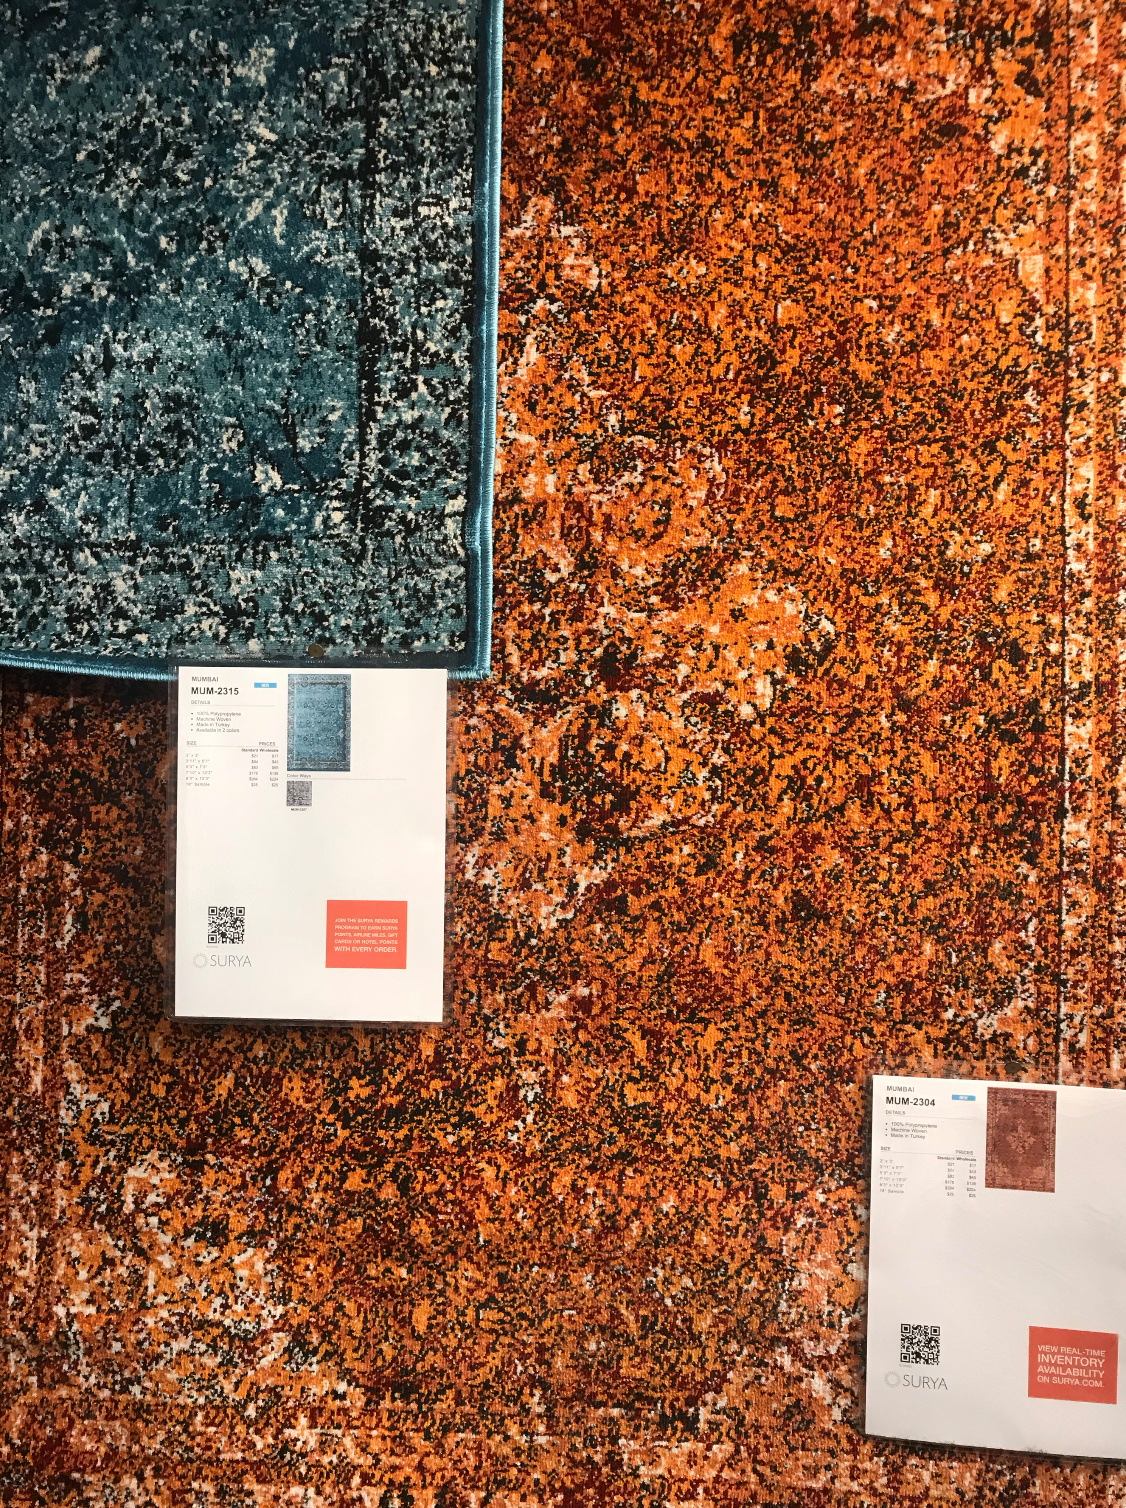 teal and orange flat weaves from Surya rugs